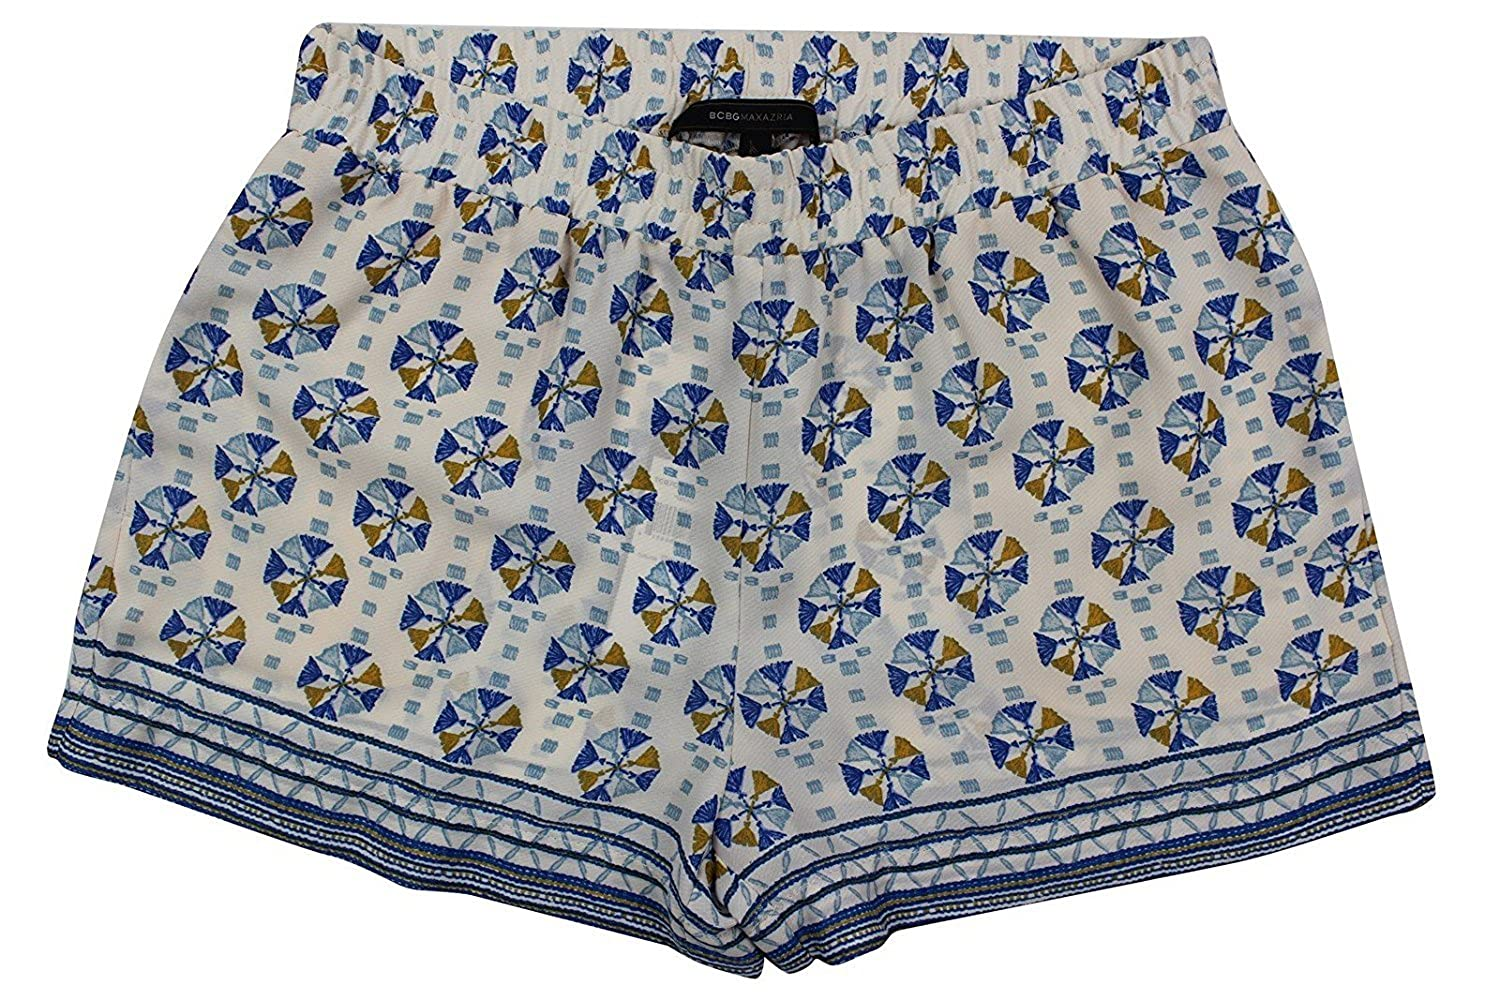 BCBGMAXAZRIA Women's Ivory Blue Floral Border Print Sheer Shorts